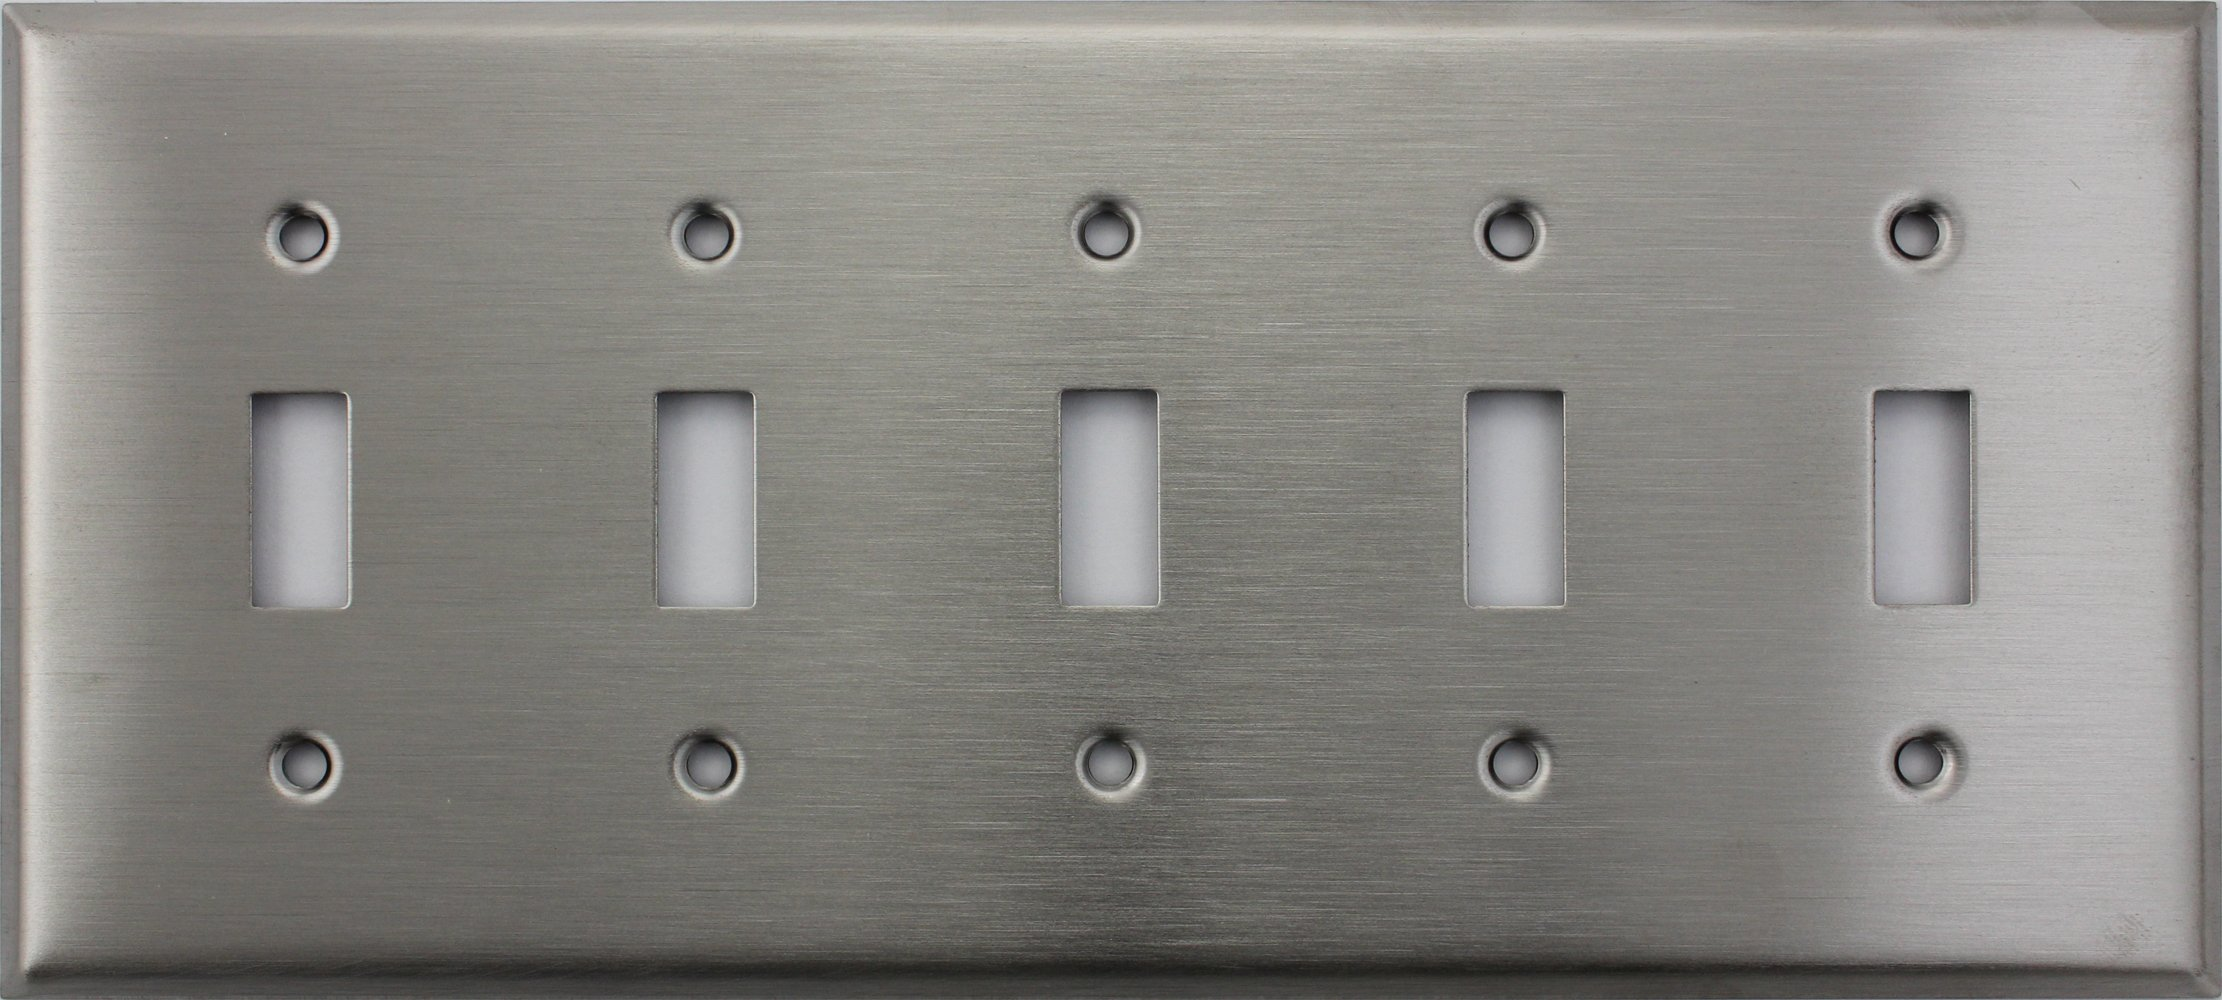 Brushed Satin Stainless Steel Five Gang Toggle Switch Wall Plate